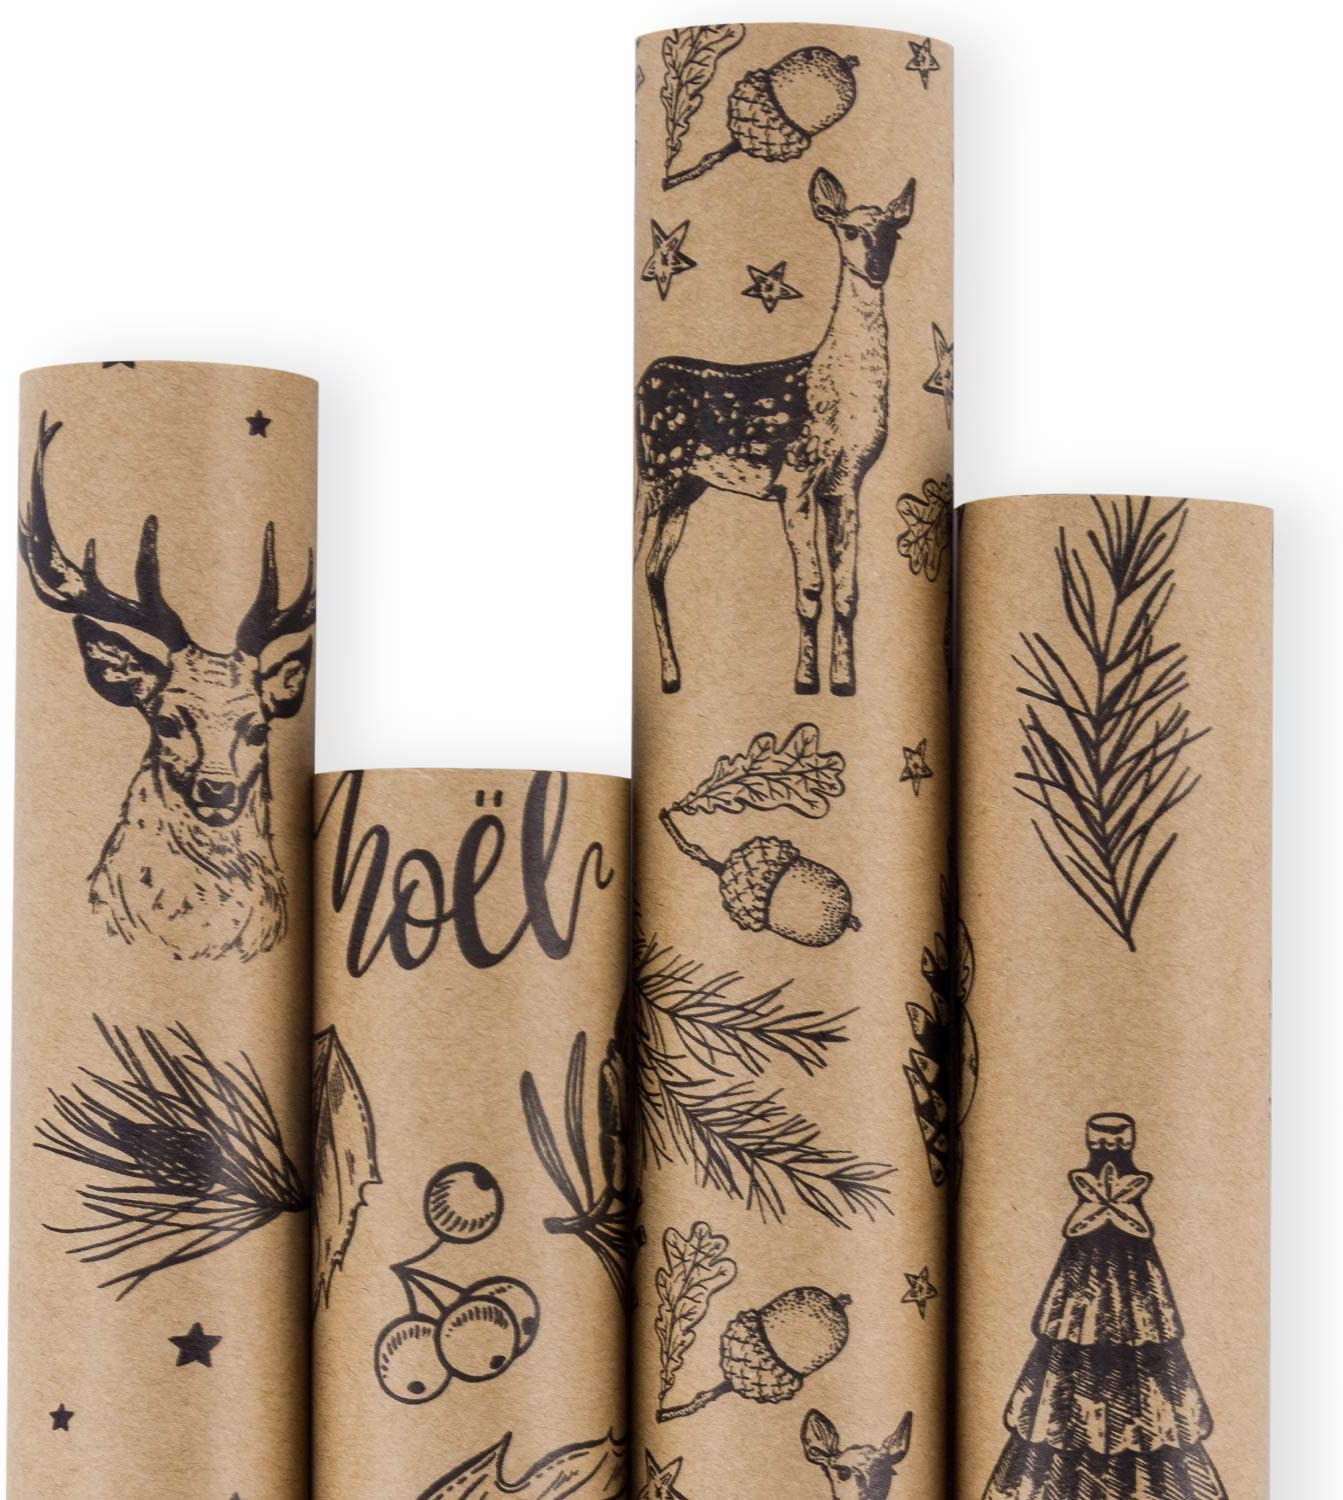 RUSPEPA Christmas Wrapping Paper - Brown Kraft Paper with Black Christmas Elements Print Paper - 4 Roll-30Inch X 10Feet Per Roll